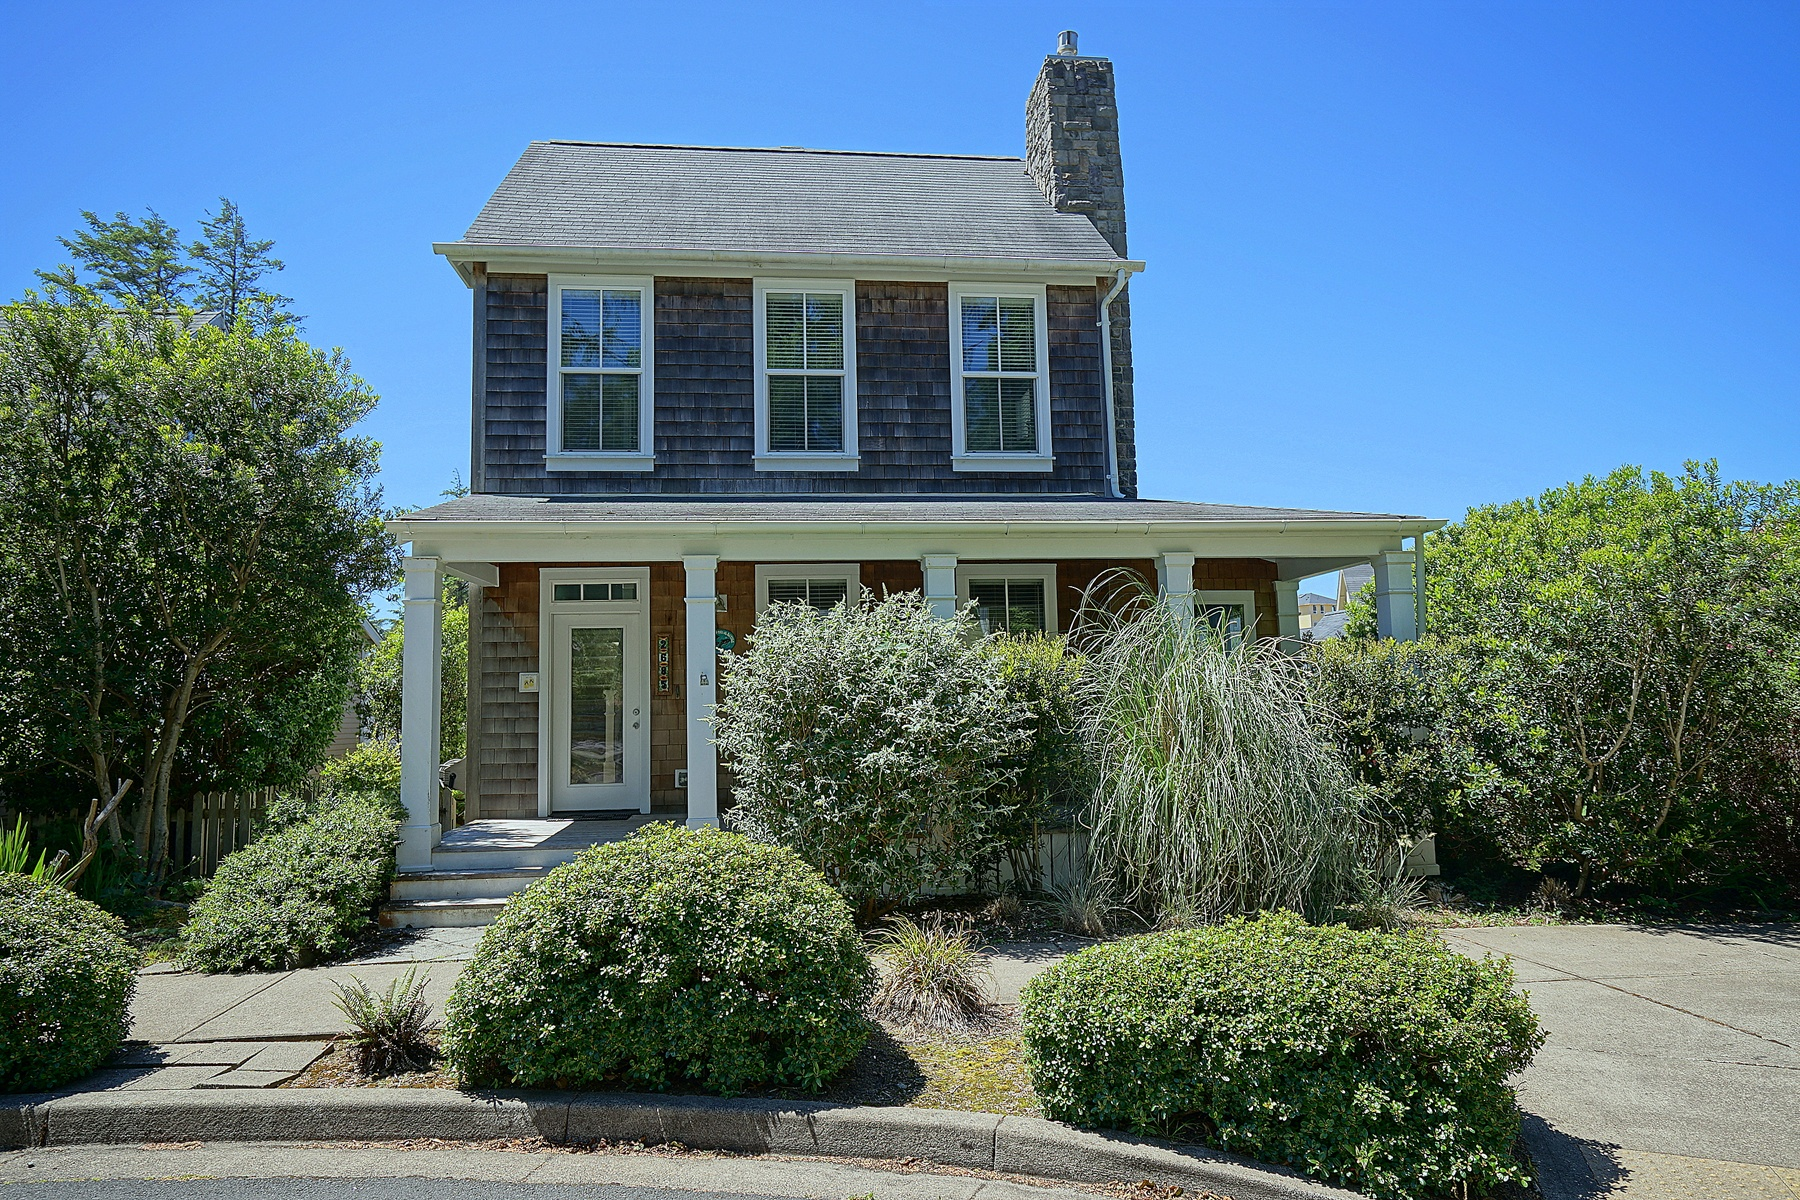 Single Family Home for Sale at Elegant Cottage Home 2685 SW Beach AVE, Lincoln City, Oregon, 97367 United States